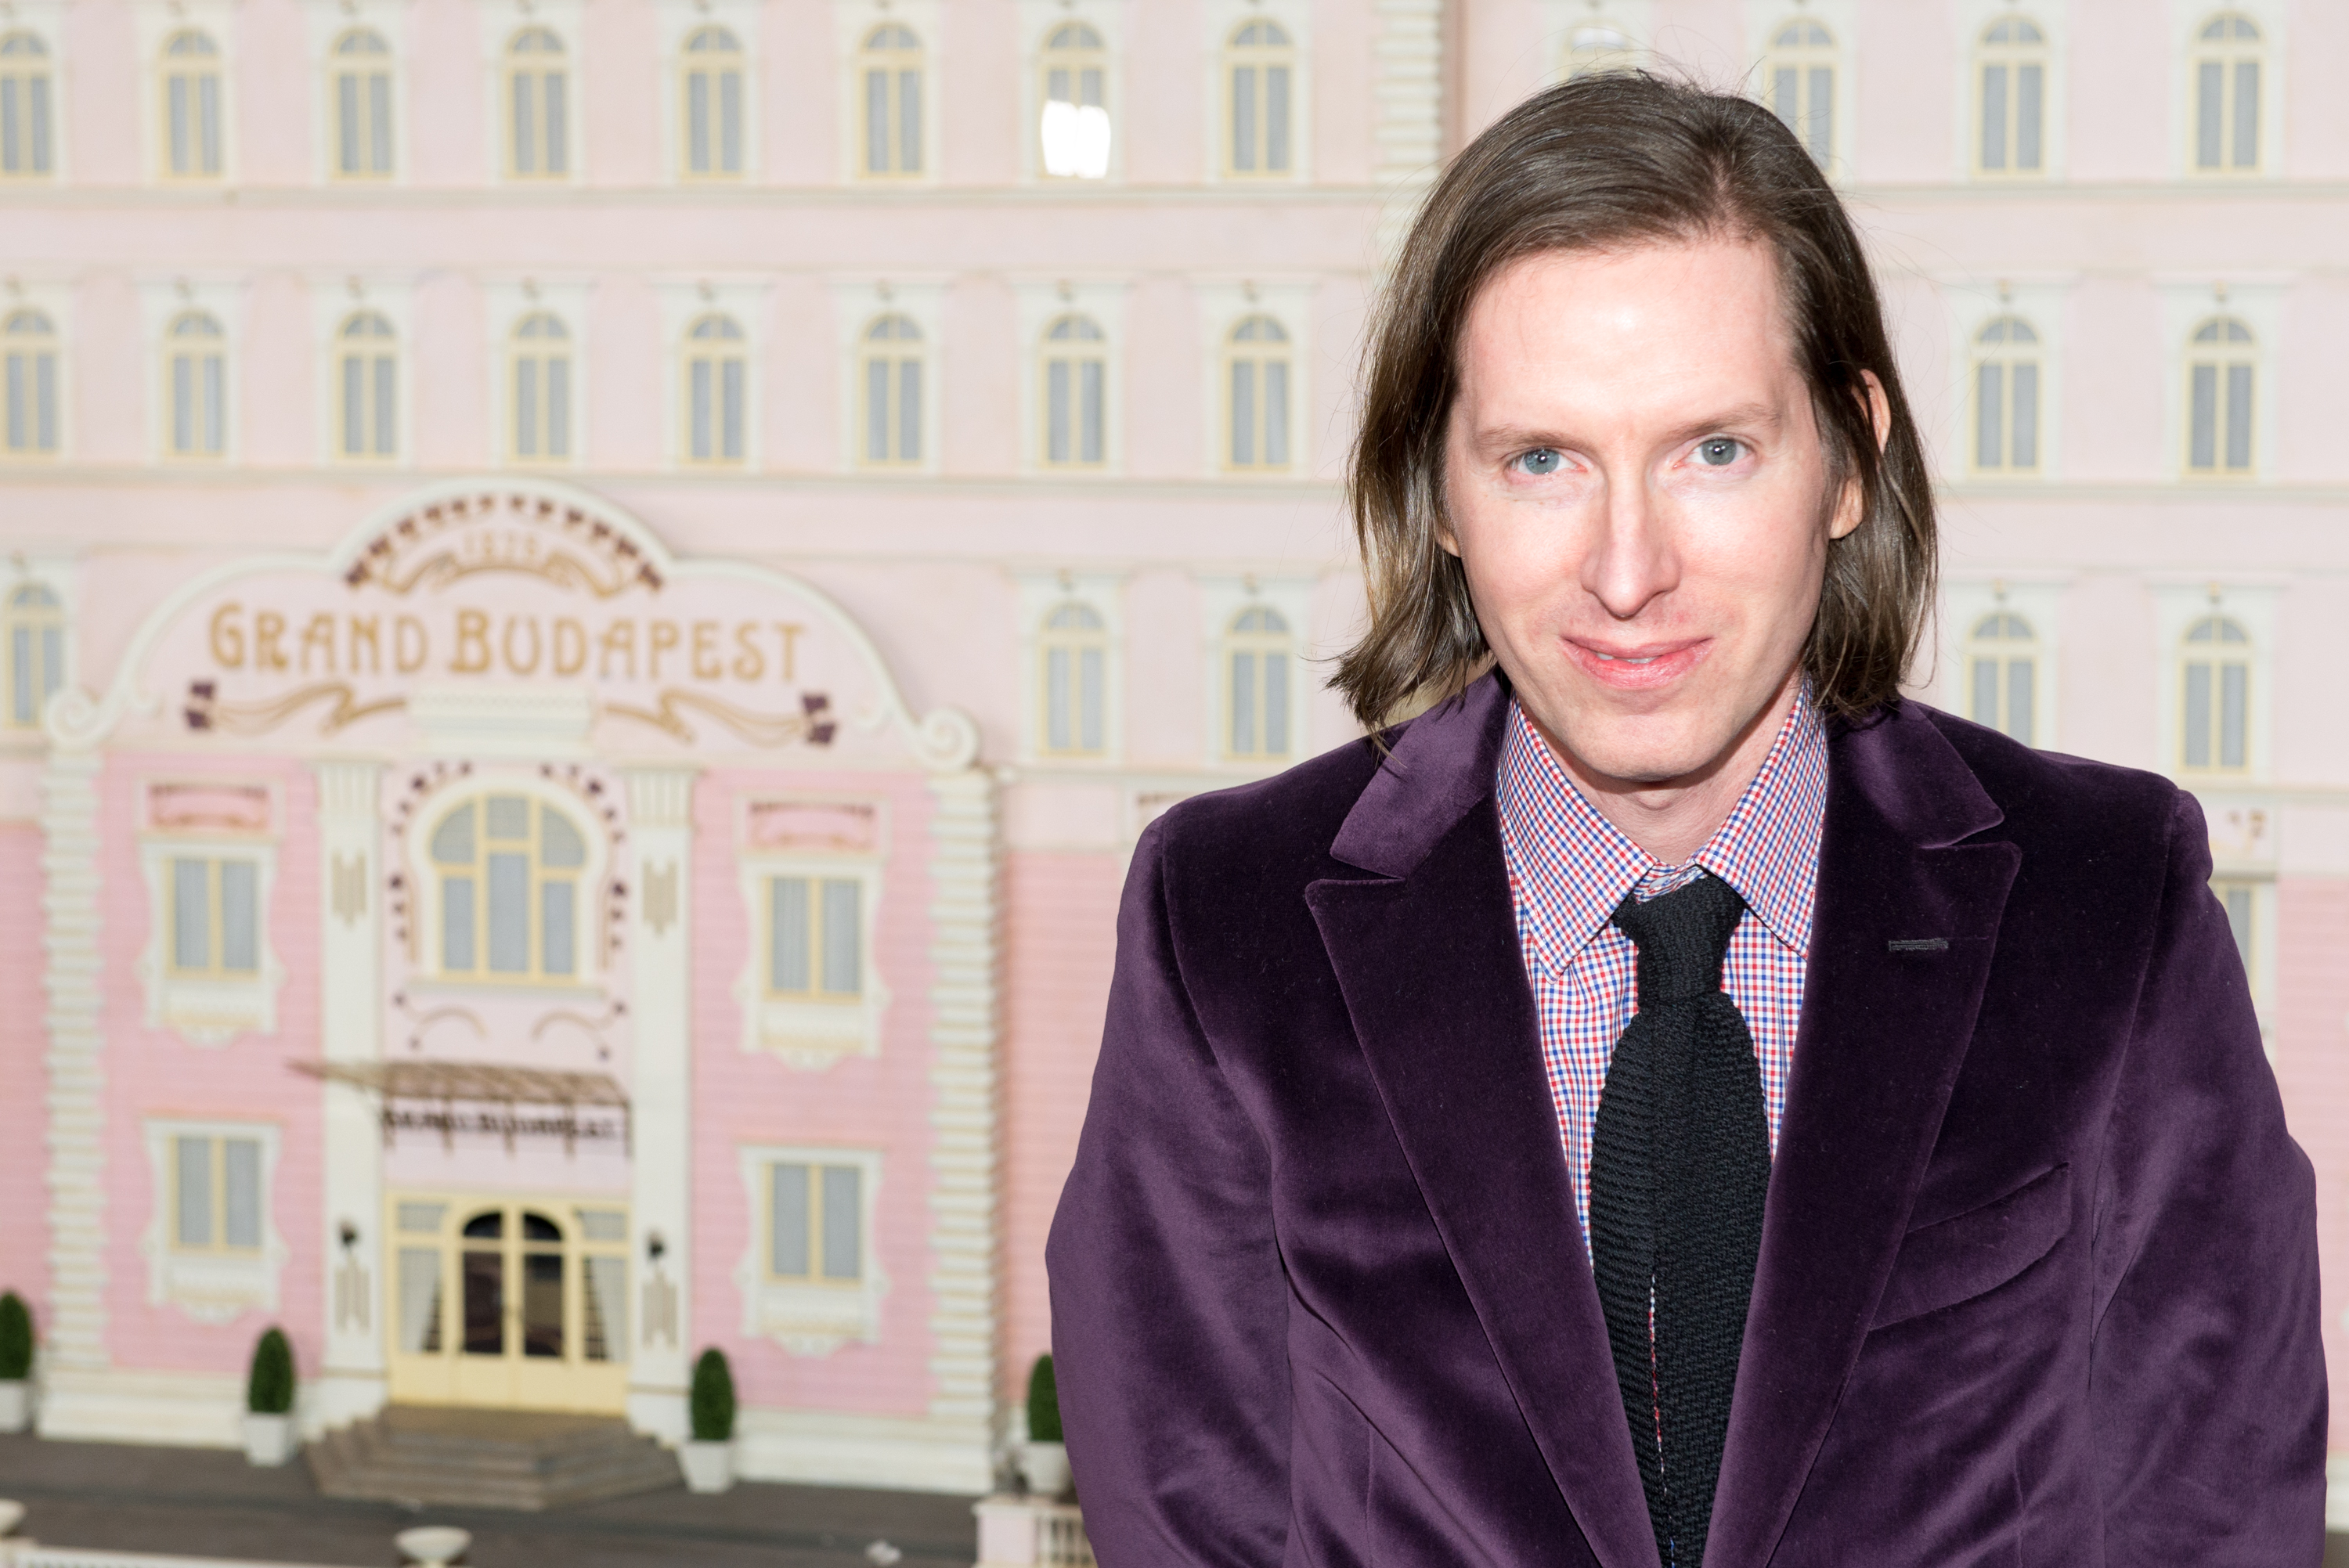 Director Wes Anderson attends  The Grand Budapest Hotel  premiere at Alice Tully Hall on Feb. 26, 2014 in New York City.